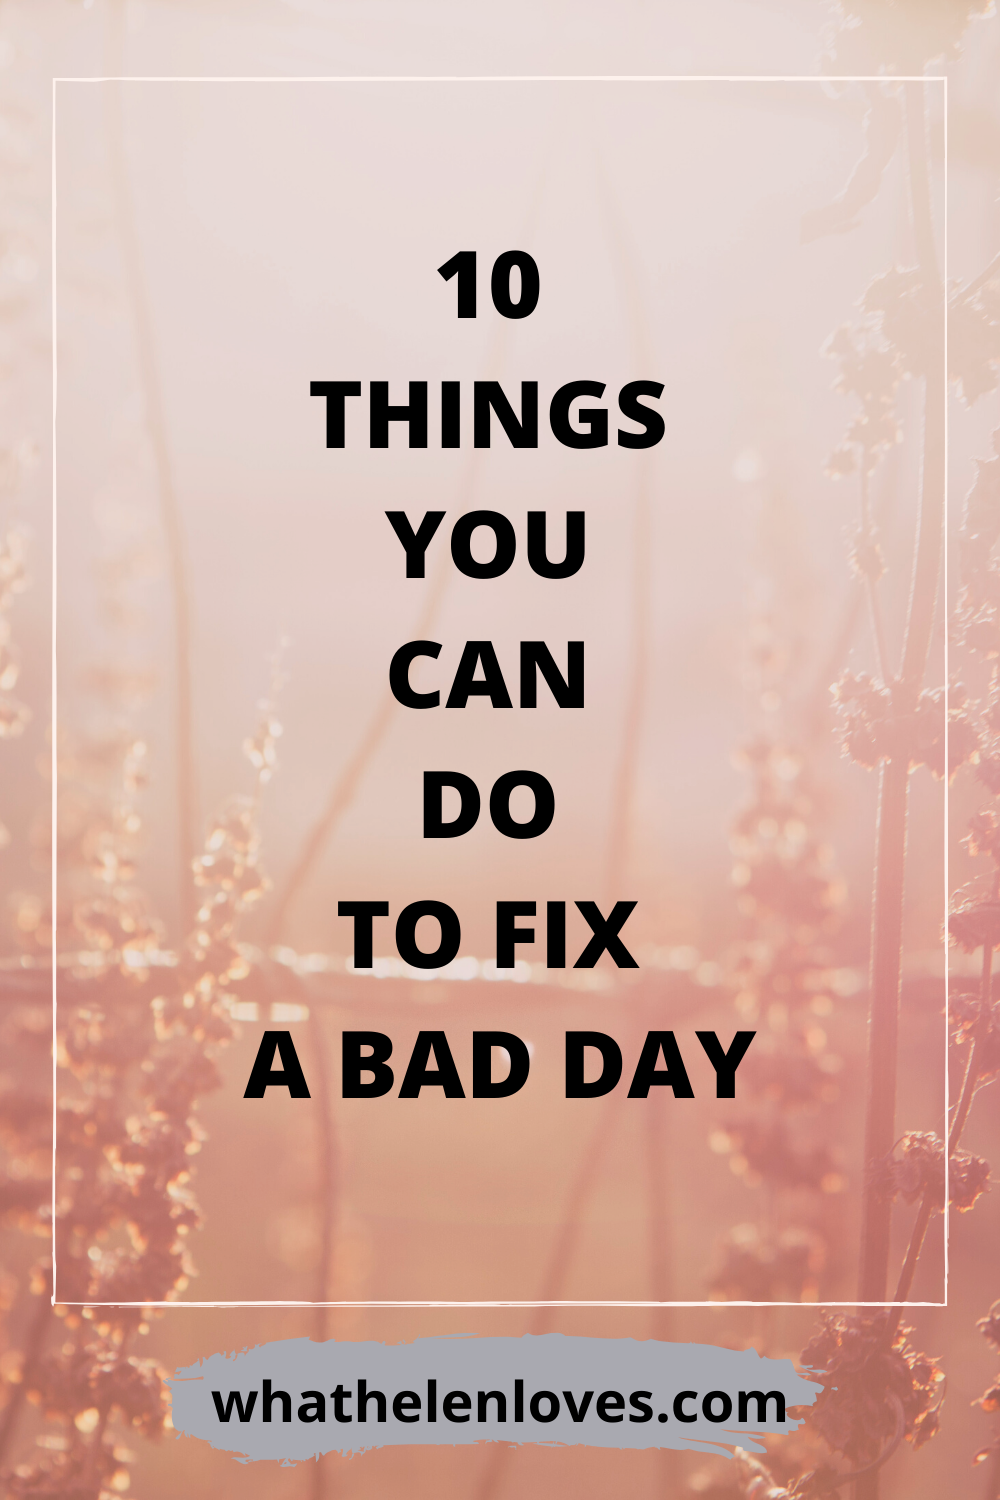 Pinterest pin for a post about 10 things you can do to fix a bad day.